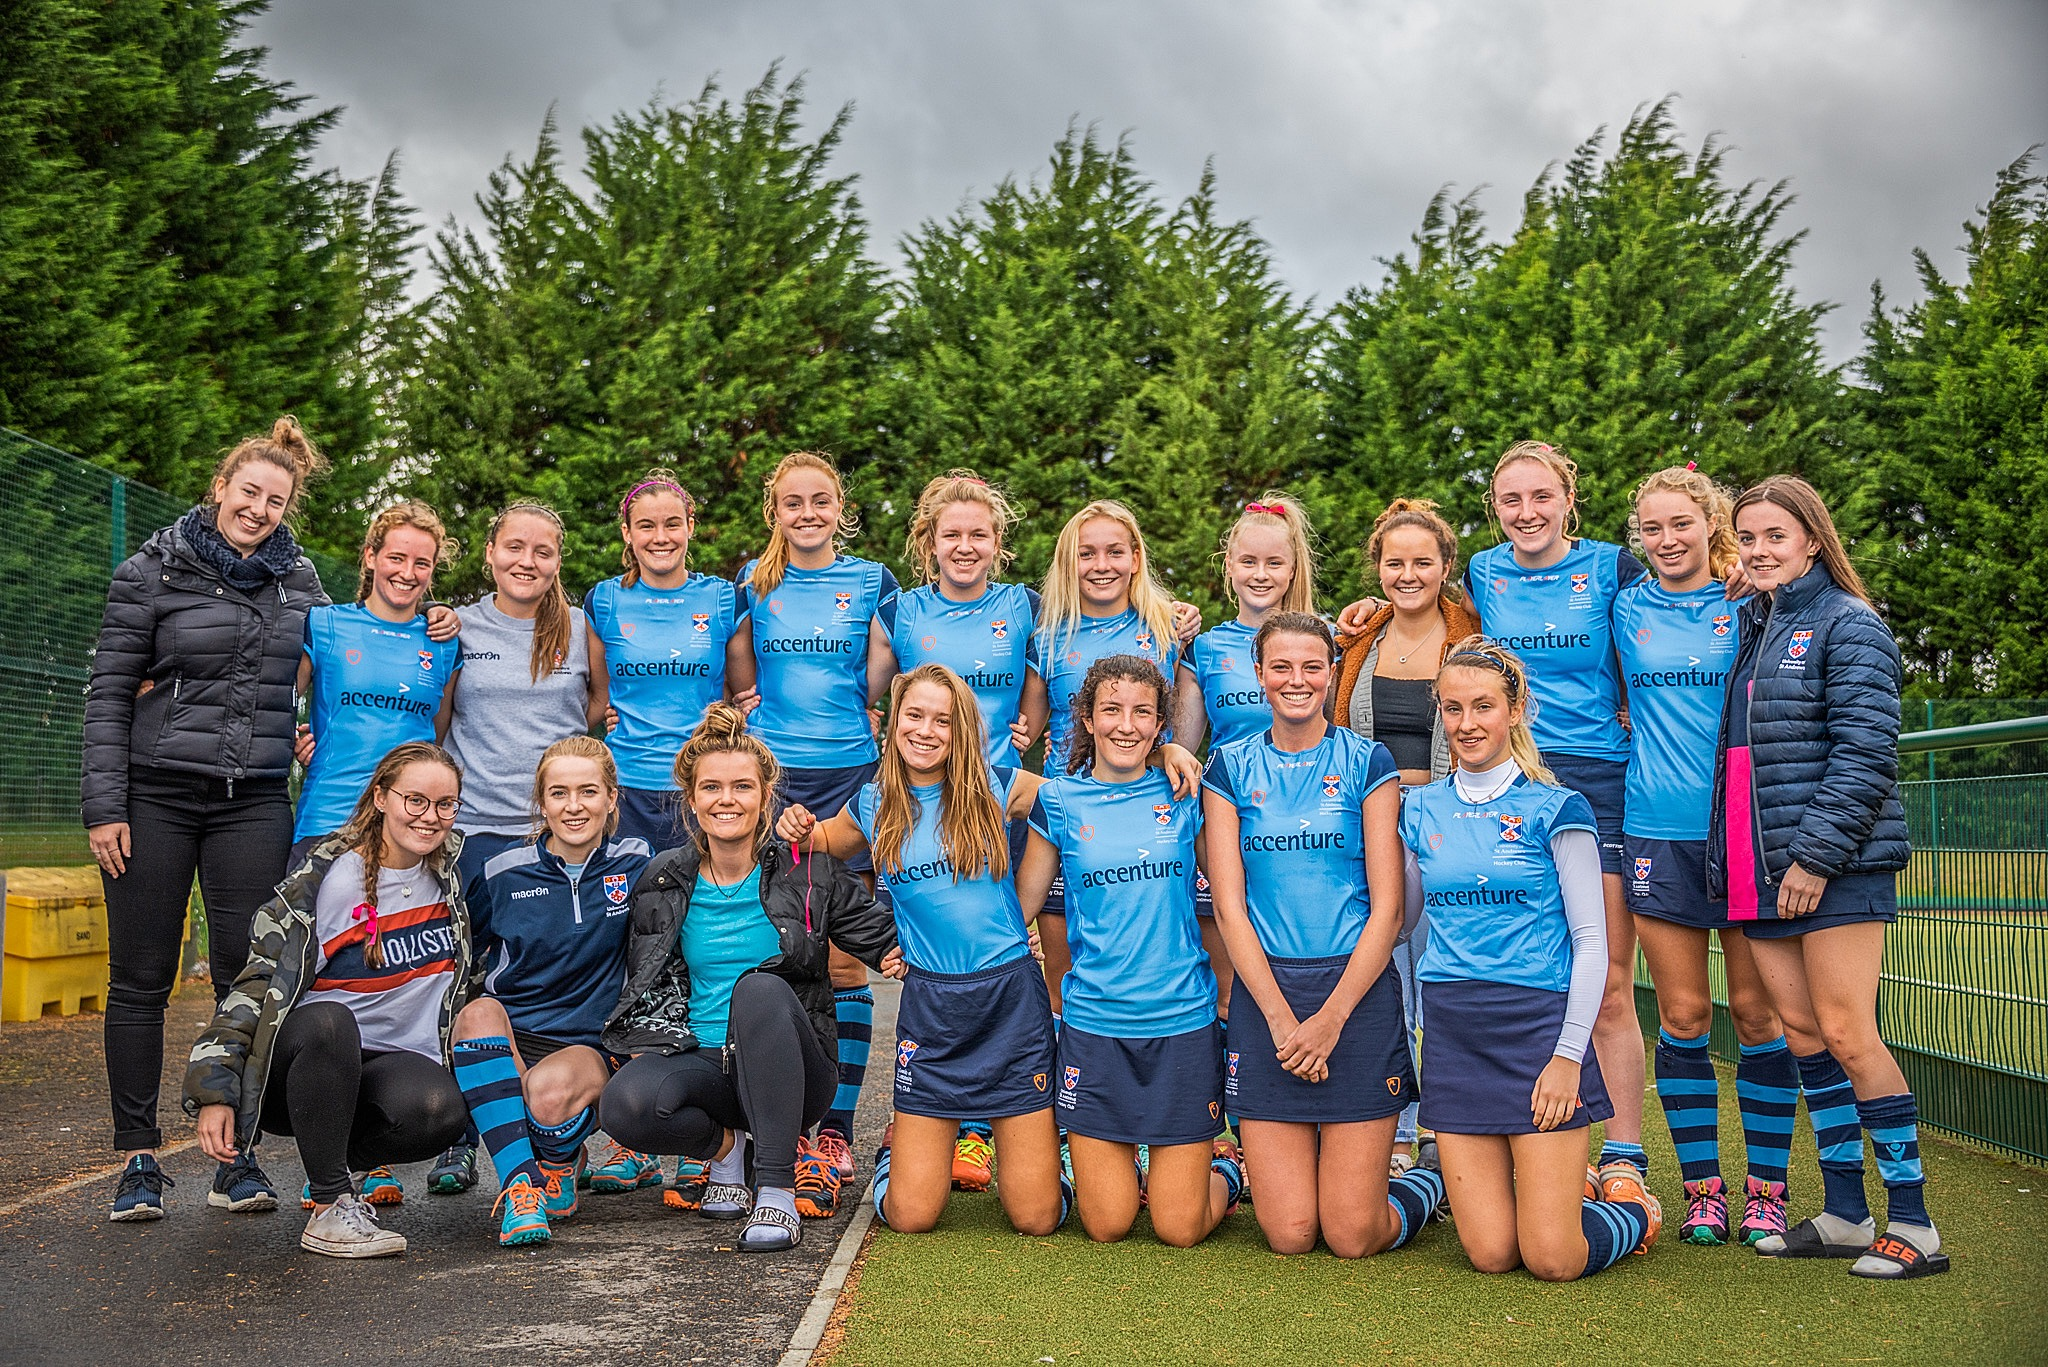 Women's 1st team photo